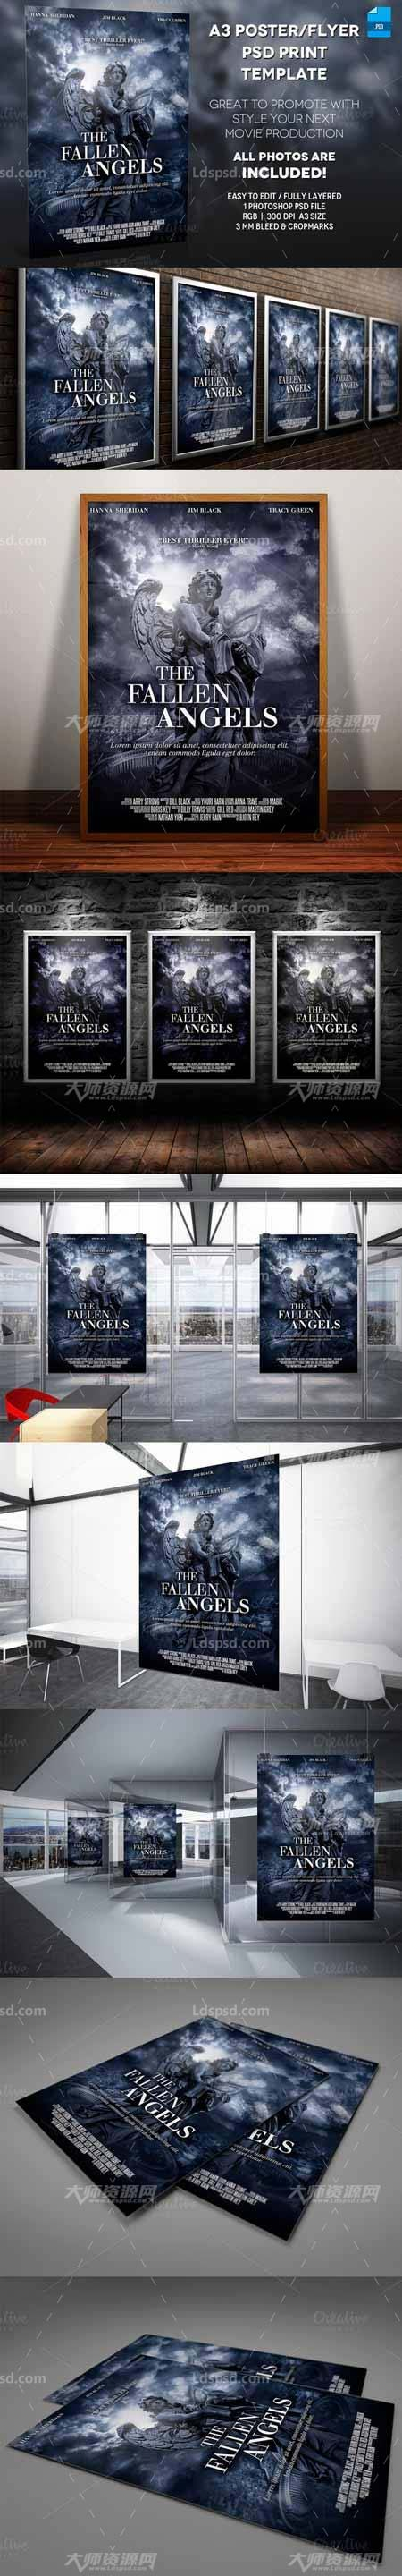 A3 - Movie Poster Print Template 2,科幻电影海报模板